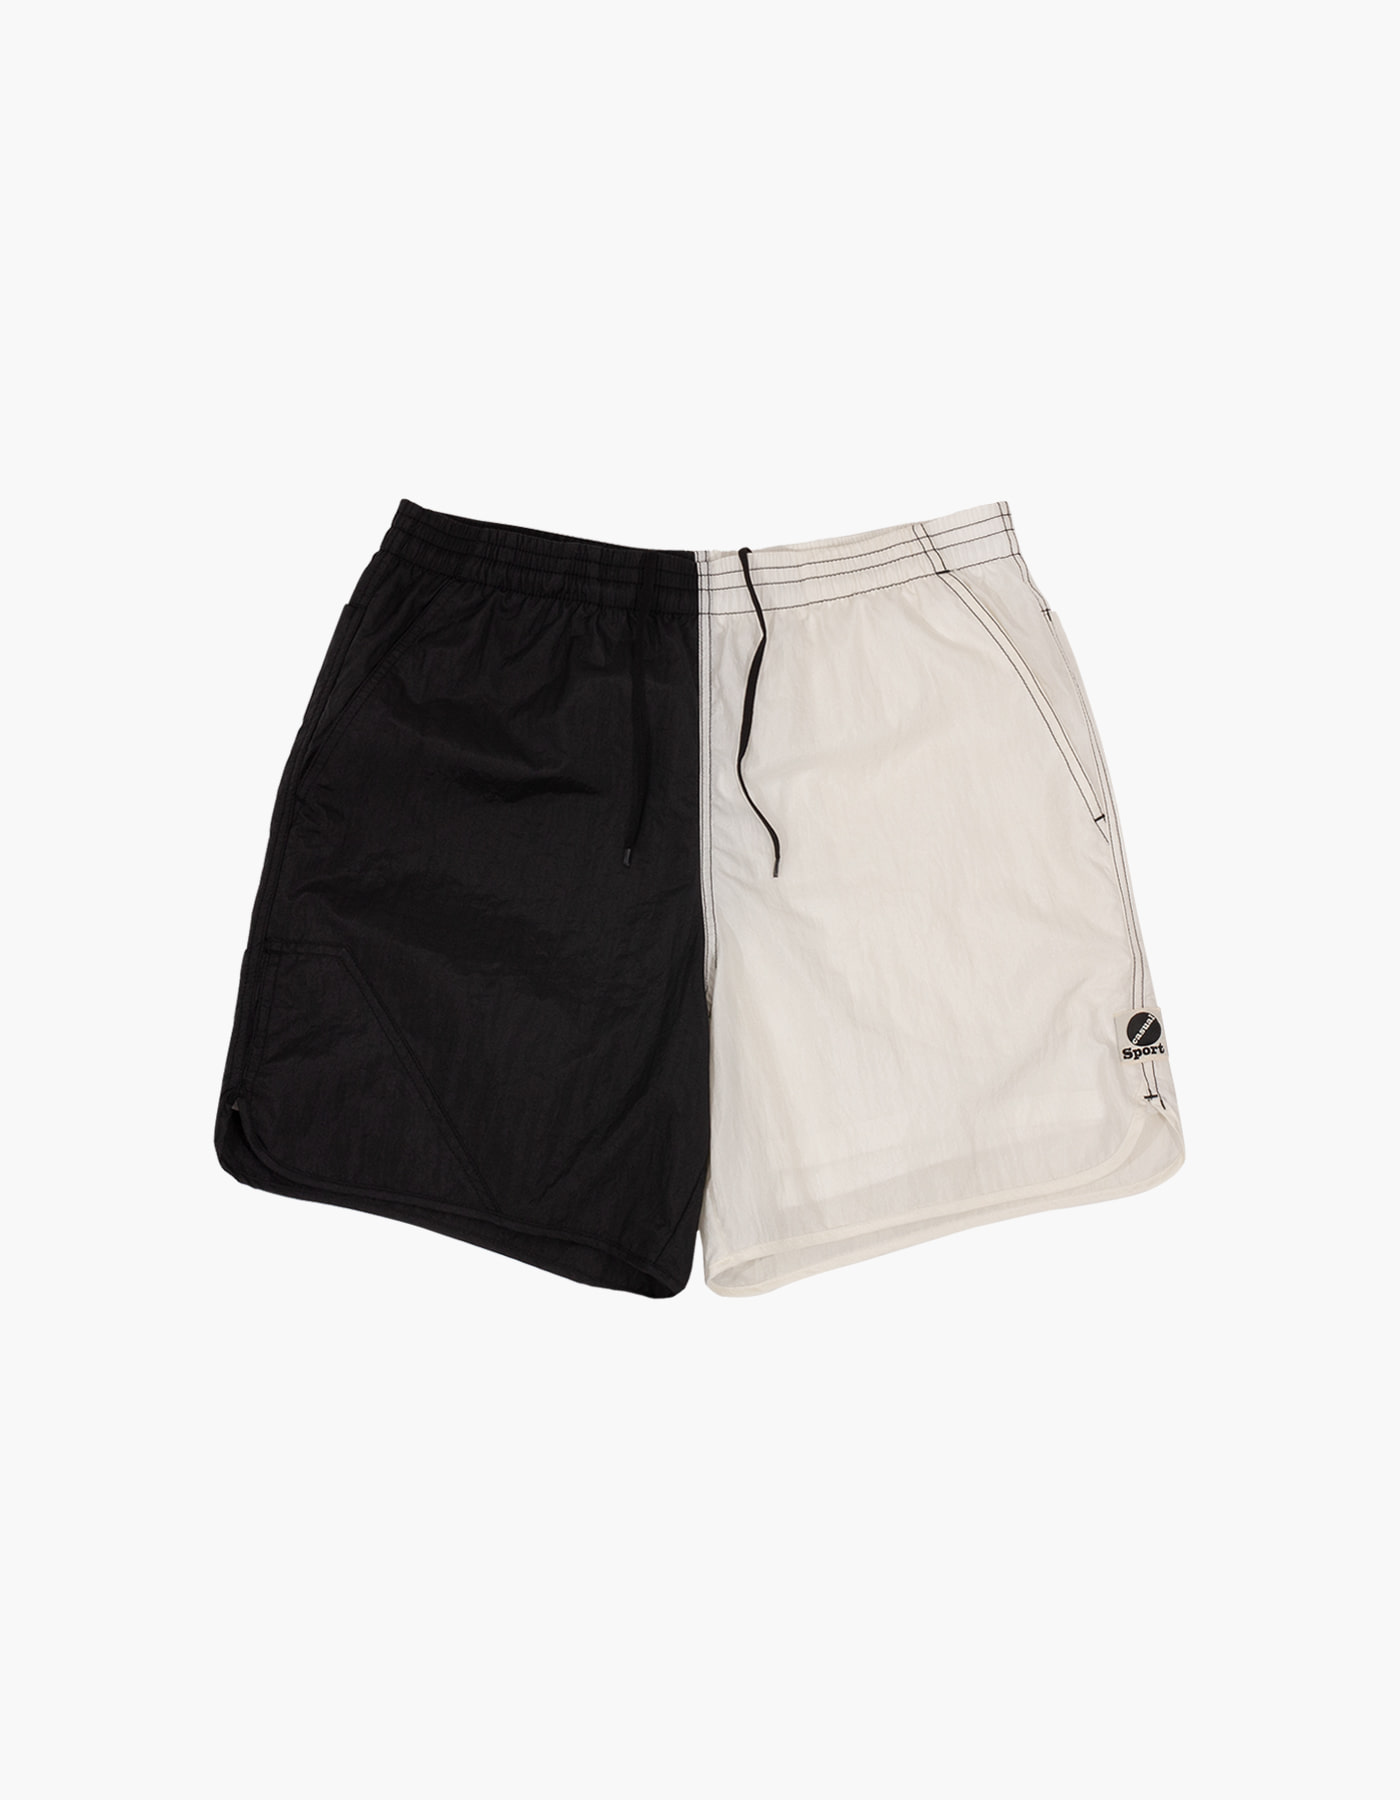 NYLON DIAMOND WASHER SHORTS / BLACK-WHITE